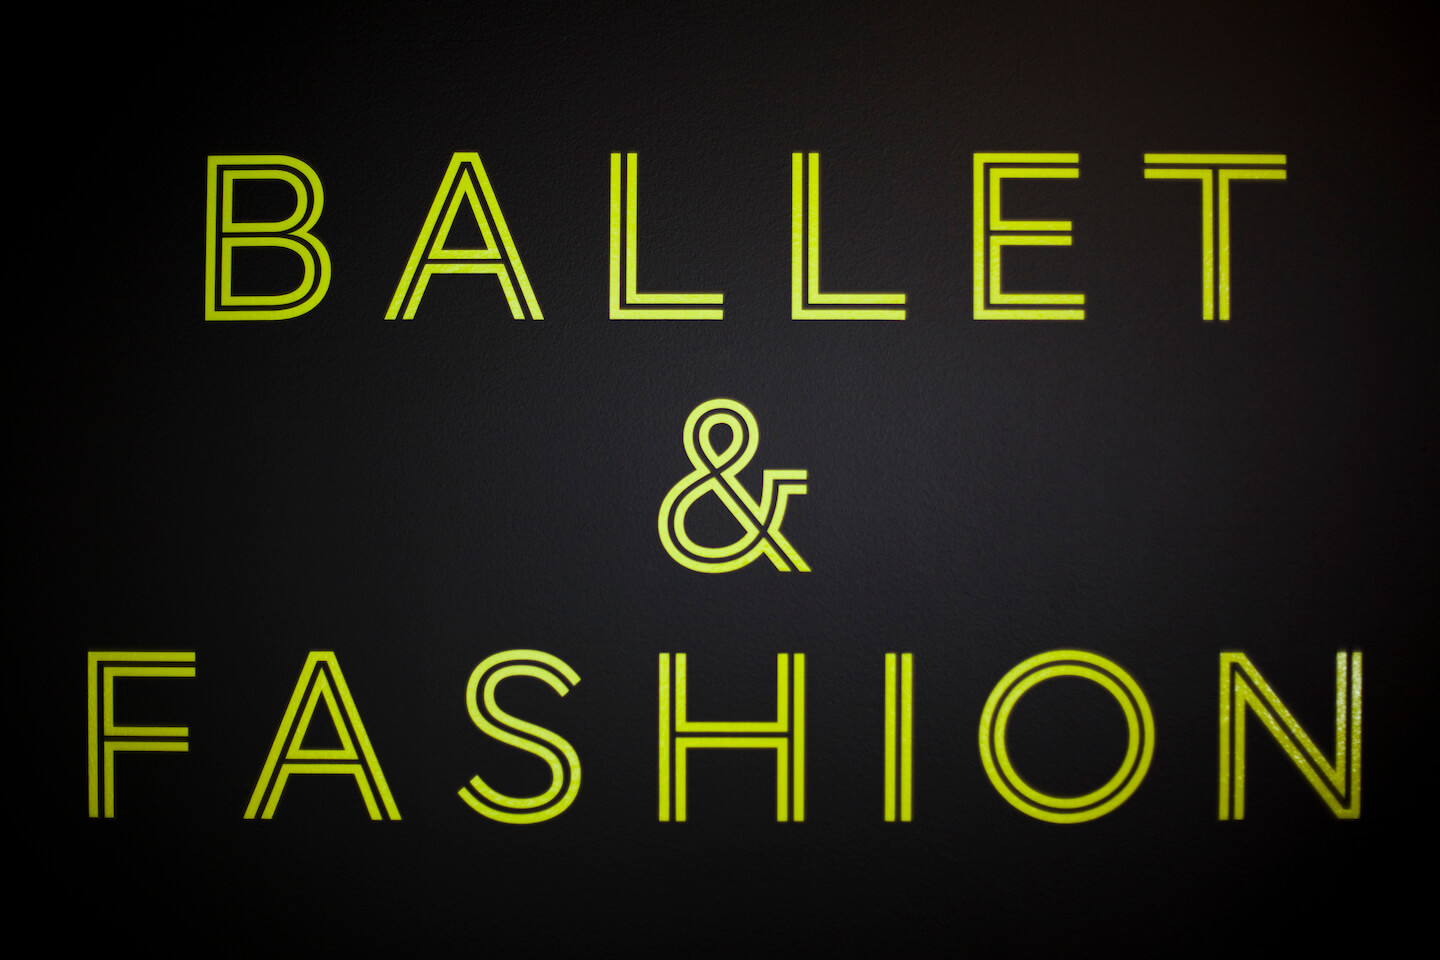 NGV Ballet and Fashion